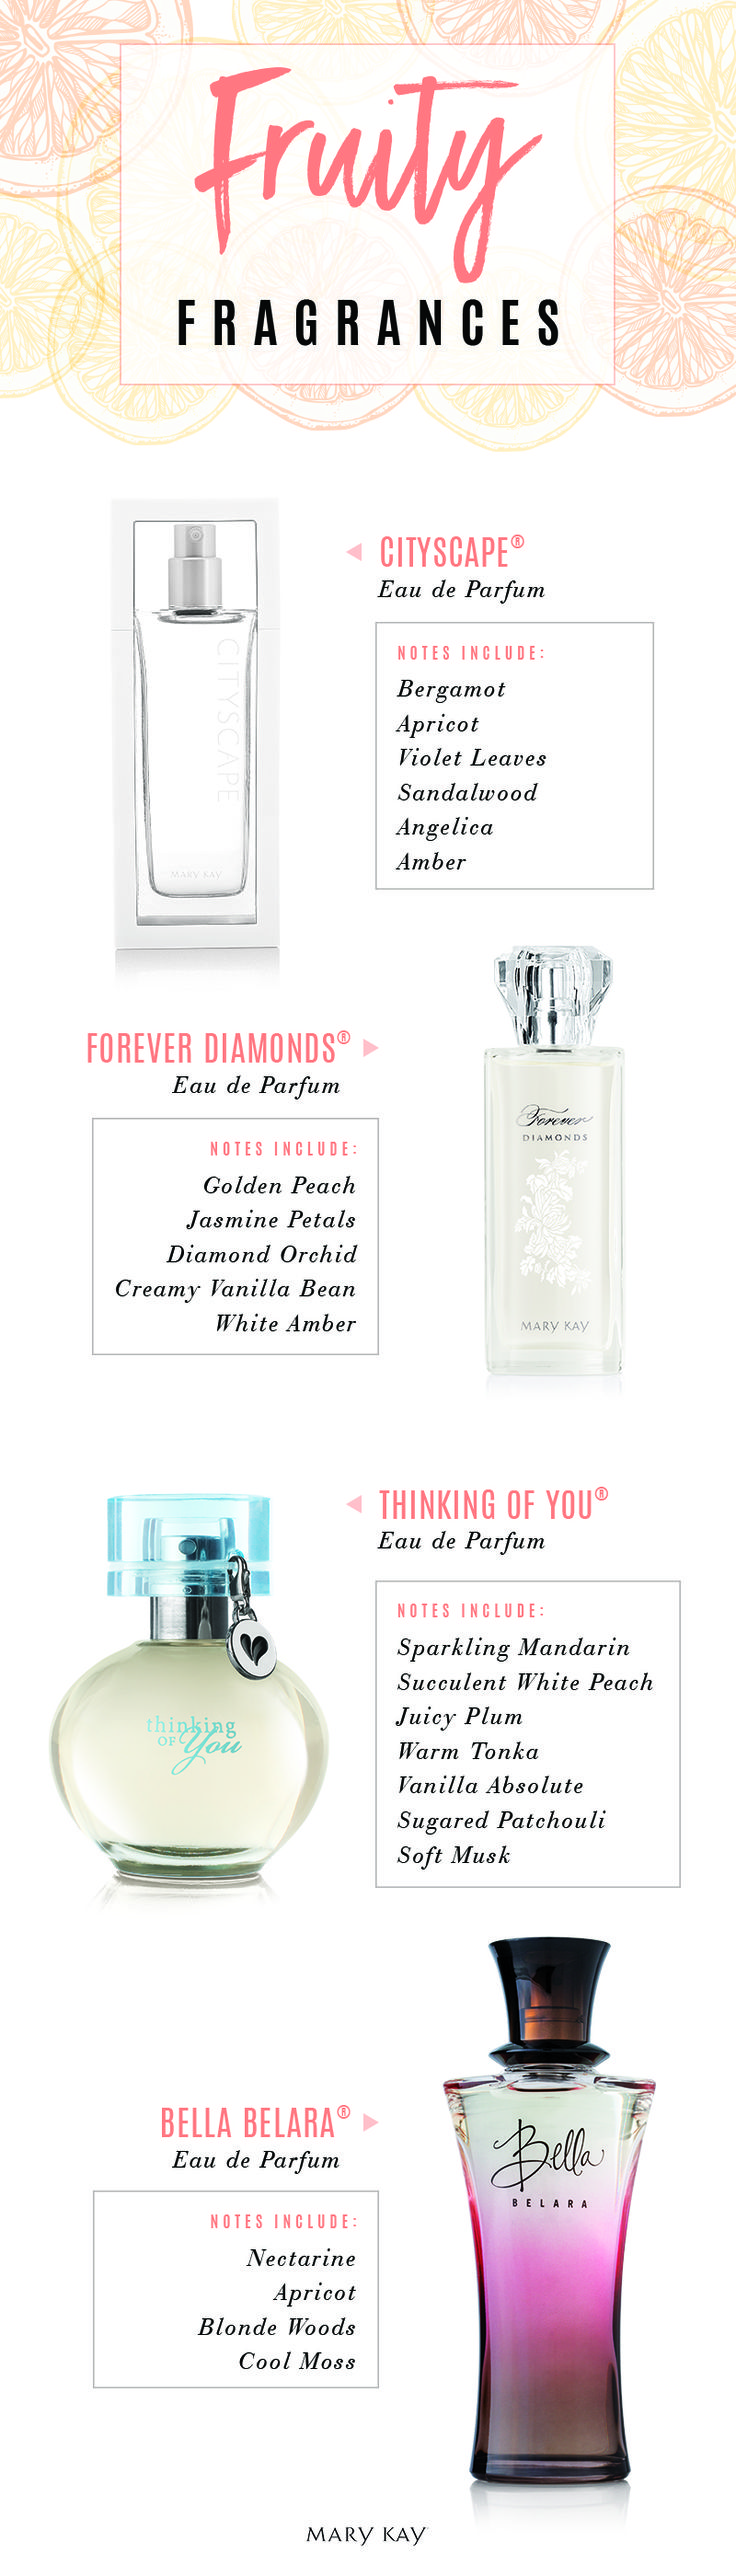 Summer scents are in full bloom! These energetic fruity fragrances make a special gift for your mom, sister or a bride-to-be. | Mary Kay